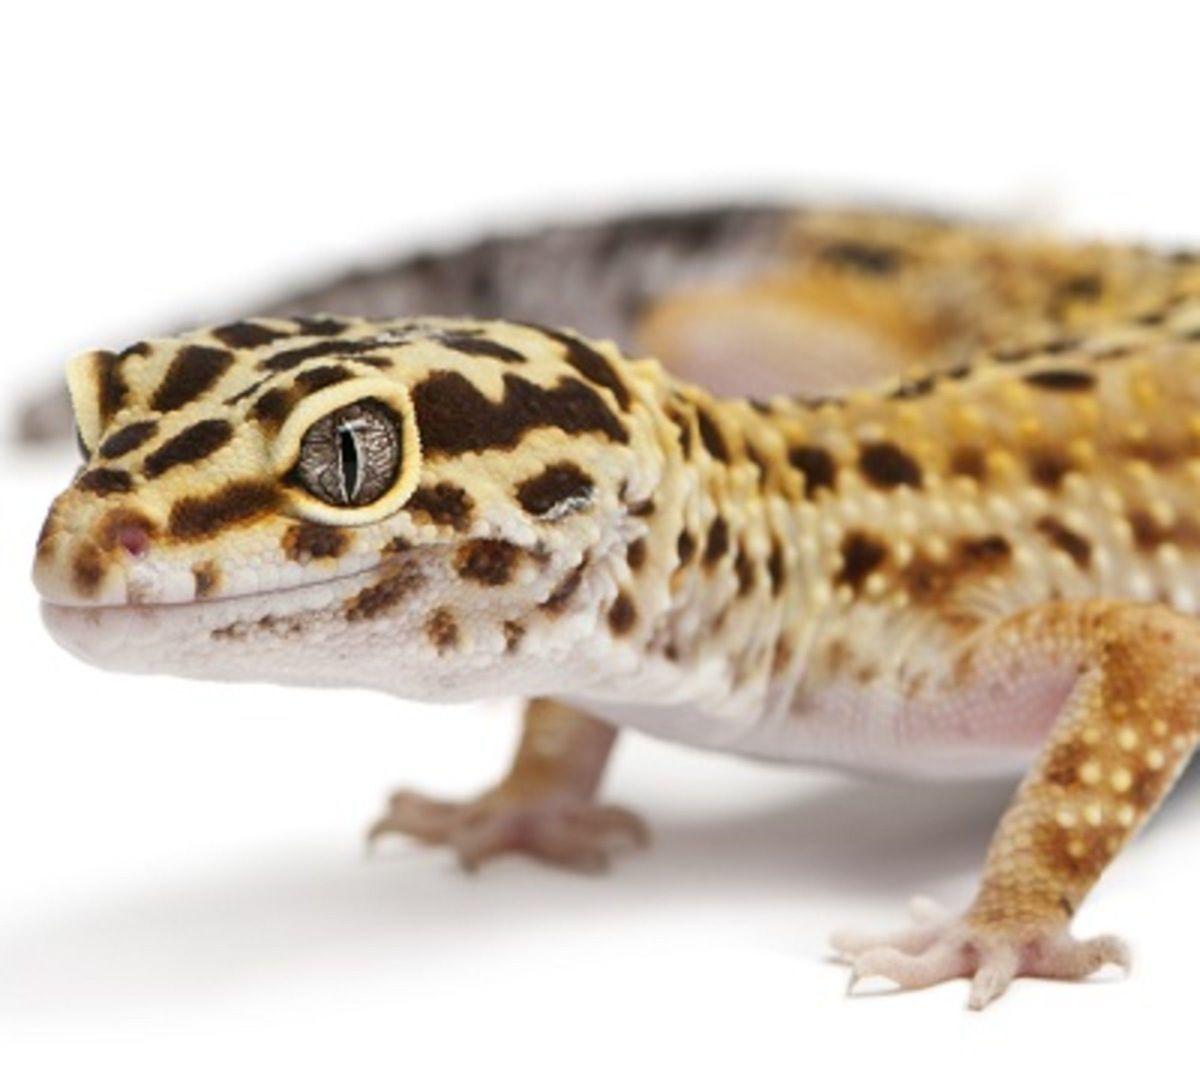 the-leopard-gecko-and-how-to-properly-care-for-one